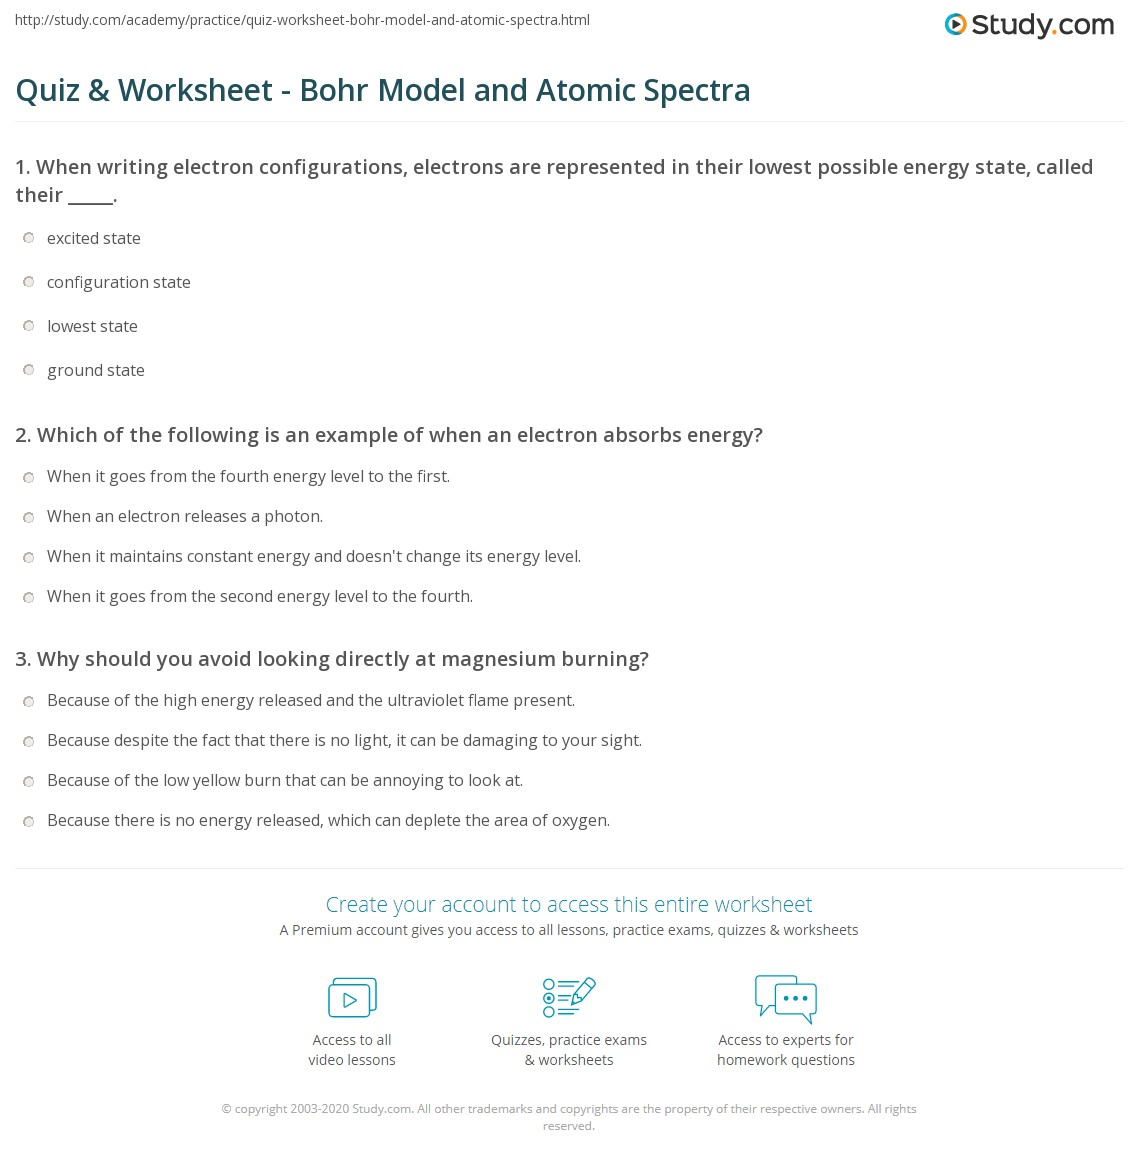 Quiz & Worksheet - Bohr Model and Atomic Spectra | Study.com